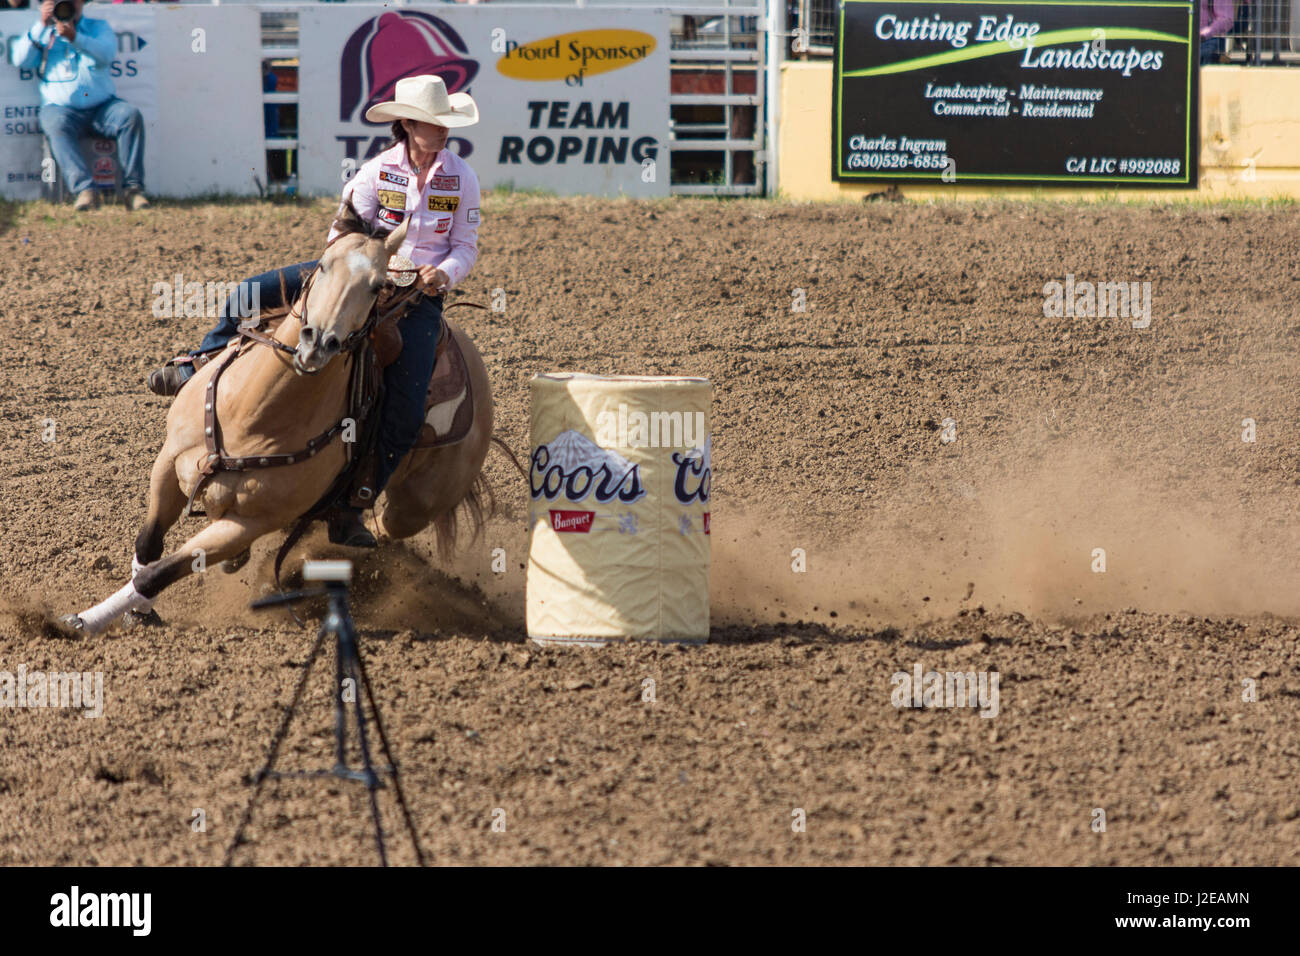 Cowgirl Roping Stock Photos & Cowgirl Roping Stock Images ...